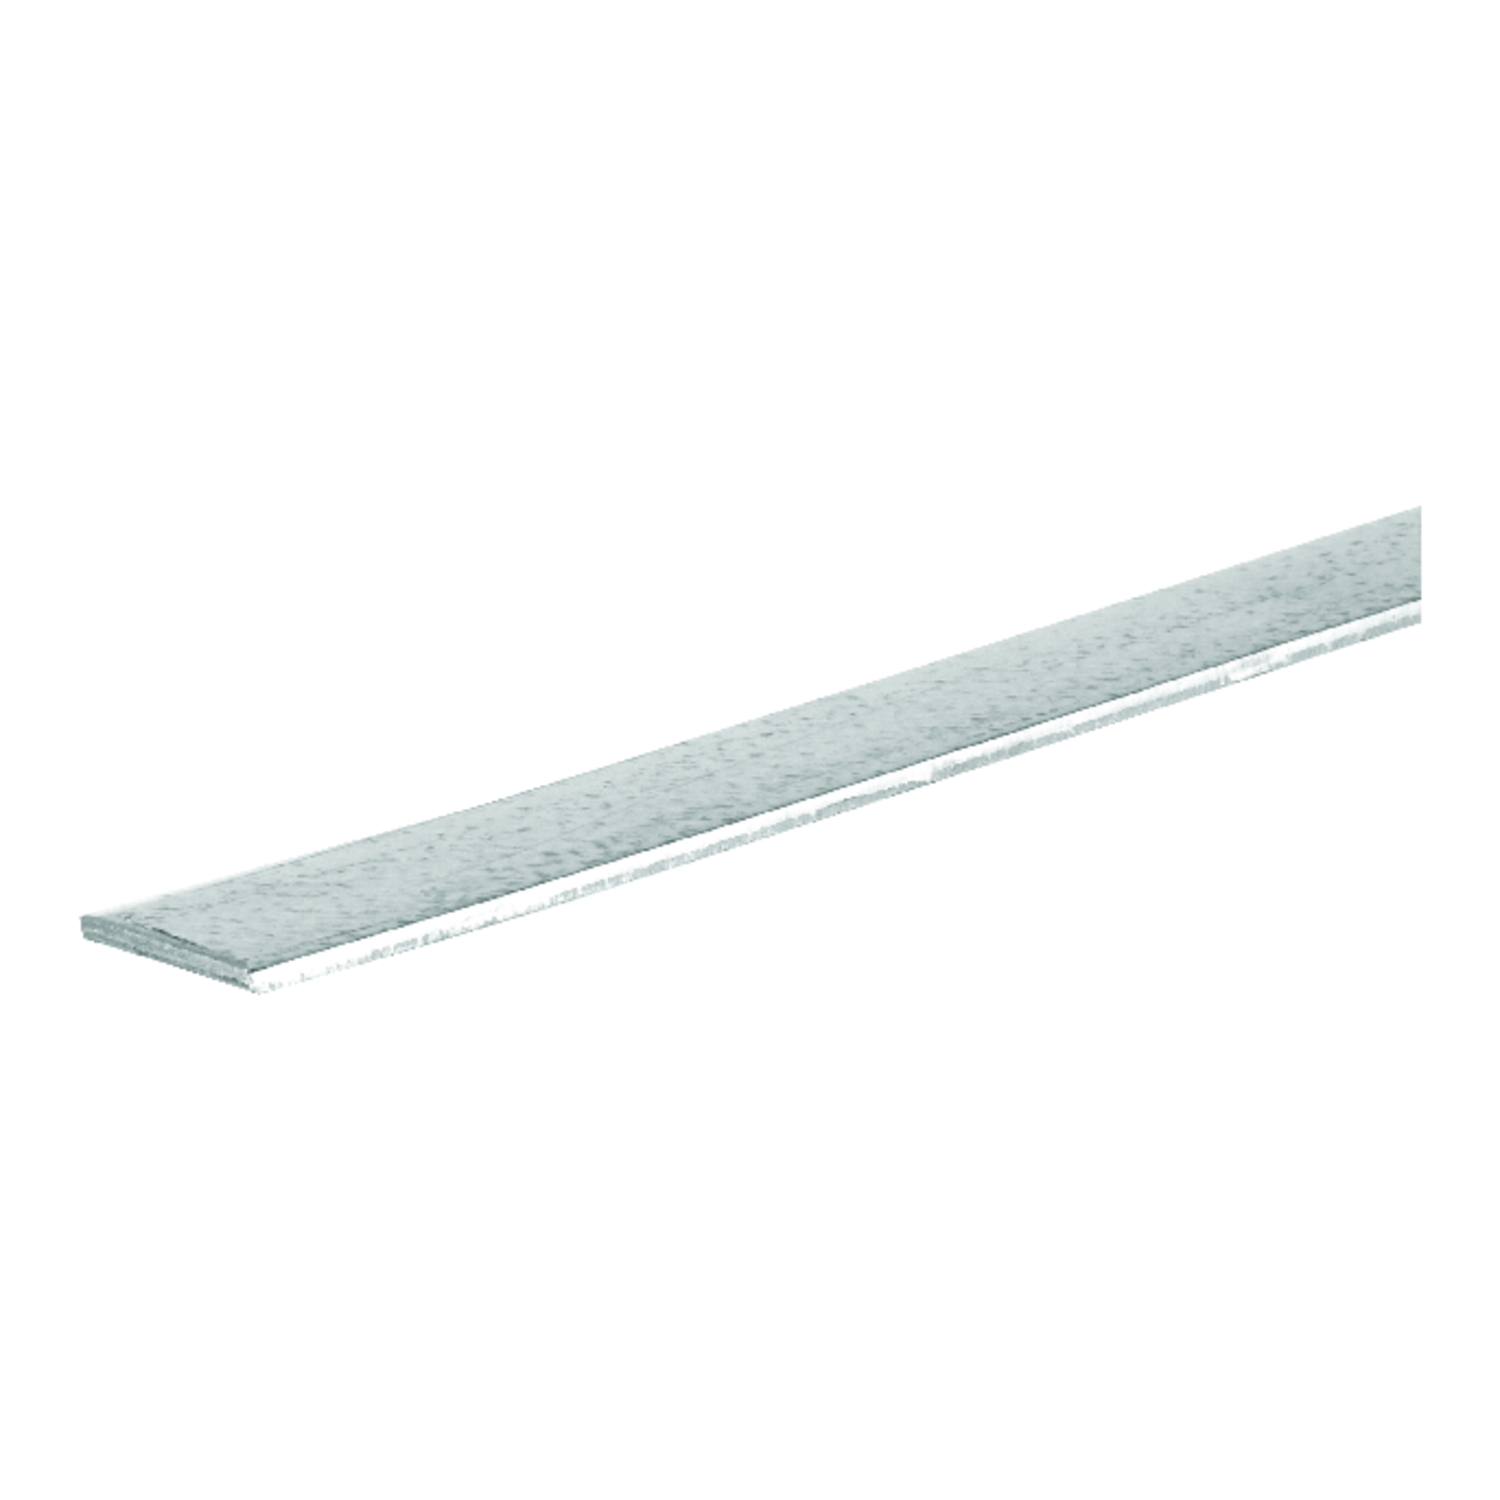 Boltmaster Flat Bar 1/8 in. x 3/4 in. x 48 in. 12 Ga Galvanized Steel